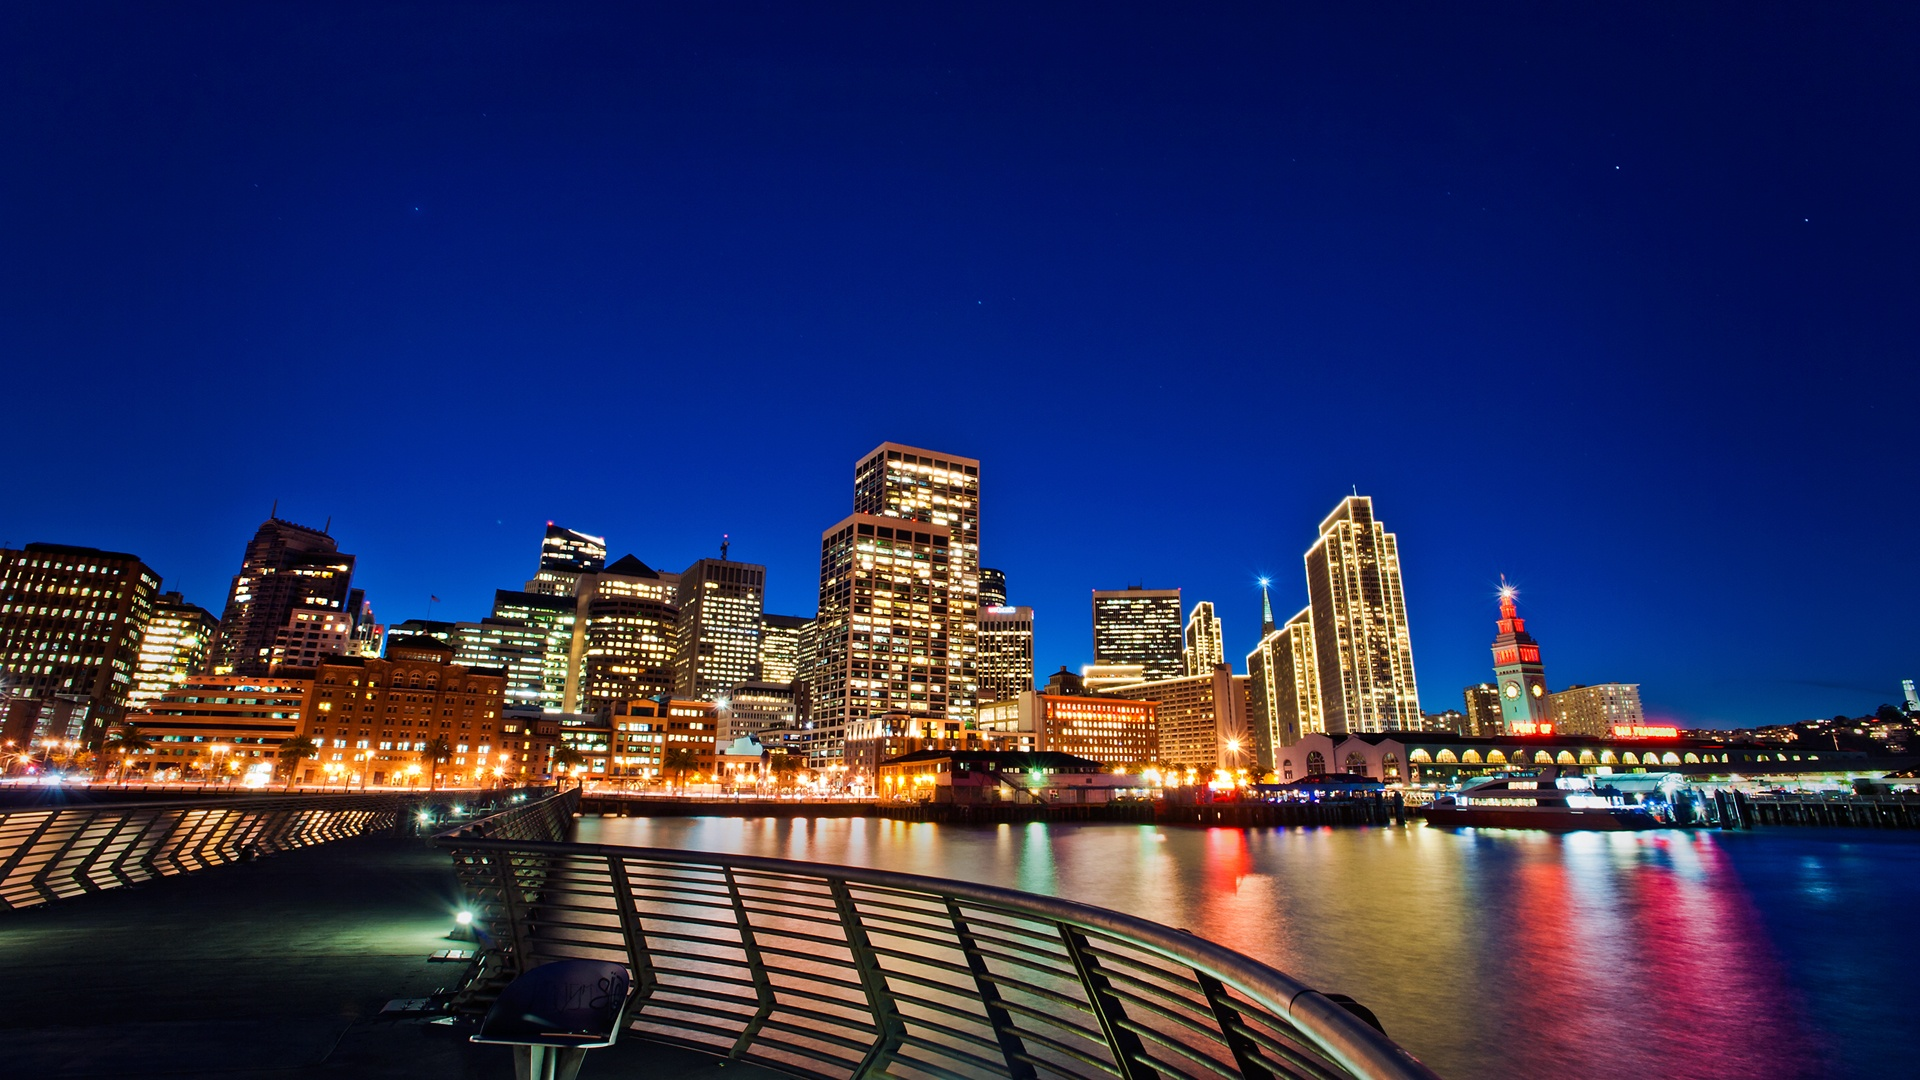 san francisco sunset wallpapers in jpg format for free download